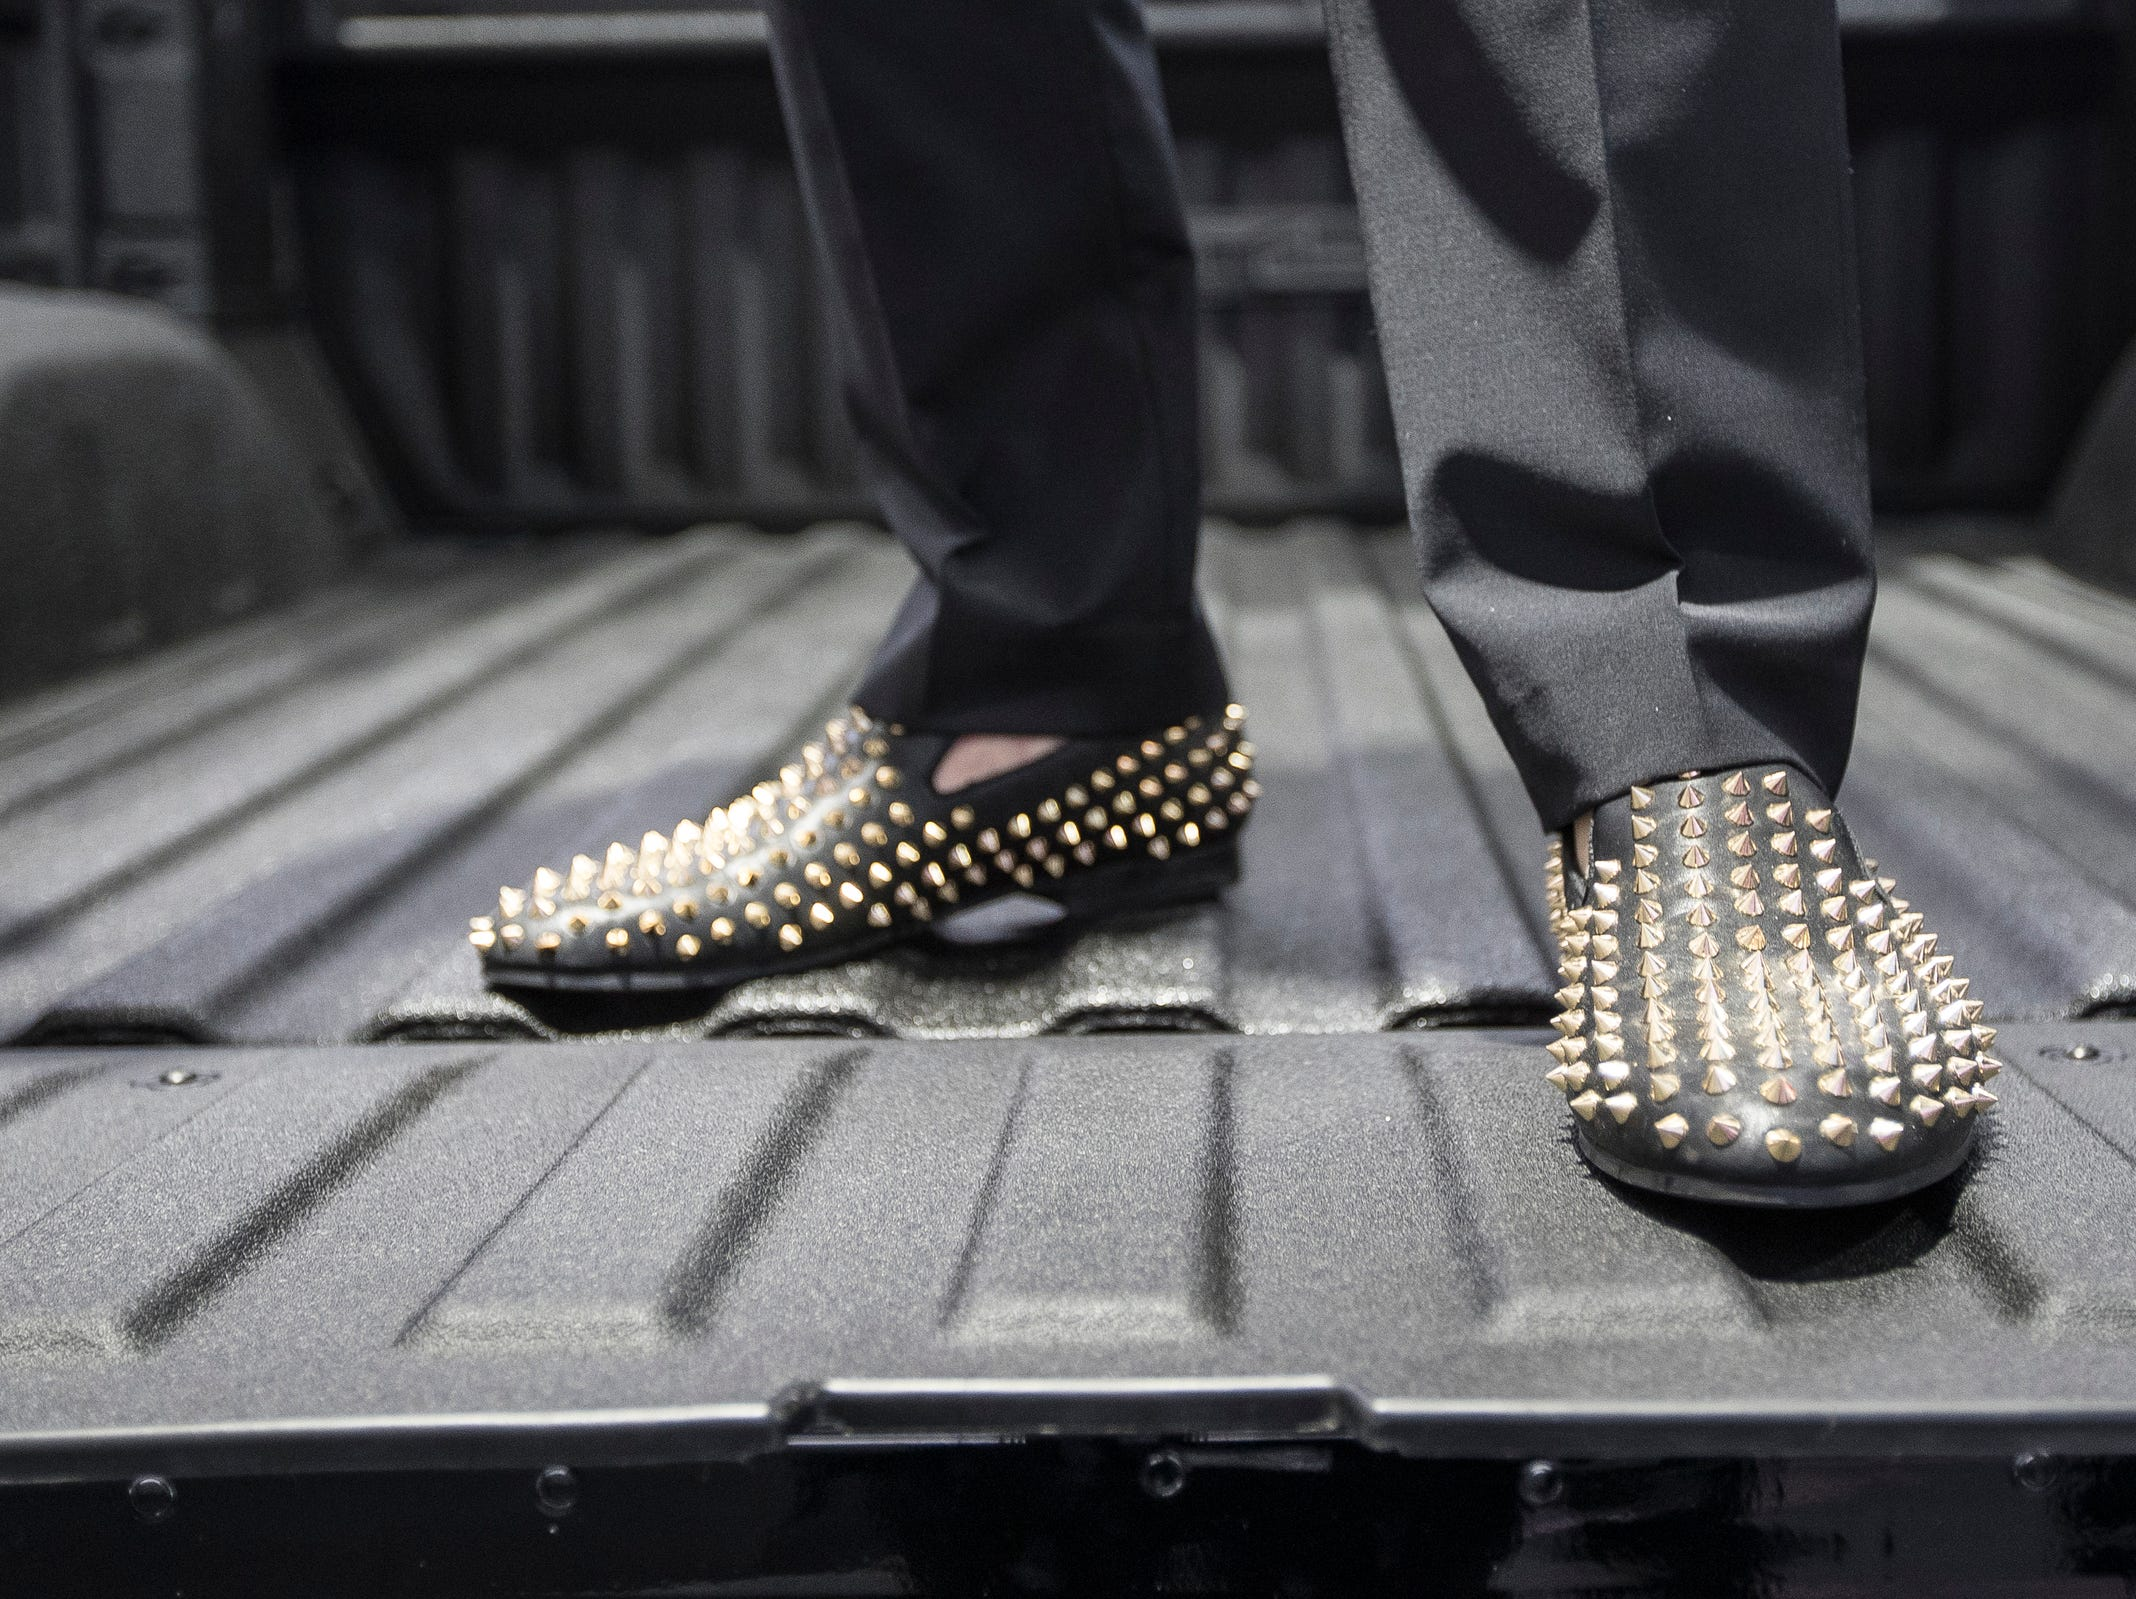 Avi Knopf of Huntington Woods shows off his shoes while standing on the bed of a 2019 GMC Sierra during the 2019 North American International Auto Show Charity Preview at Cobo Center in Detroit on Friday, January 18, 2019.